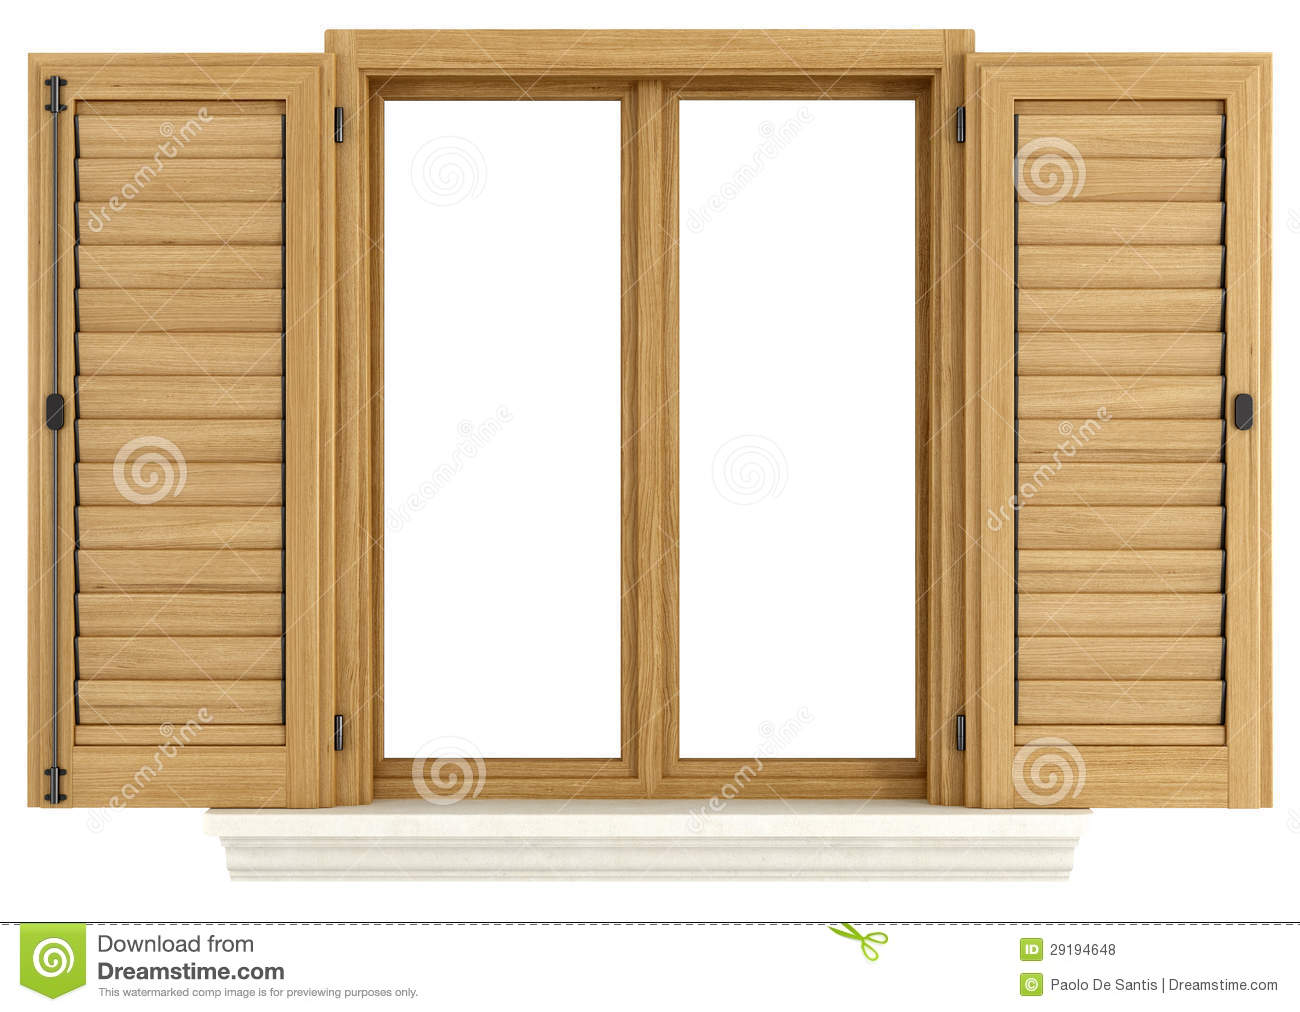 Wooden Window Shutters : Wooden window with open shutter stock illustration